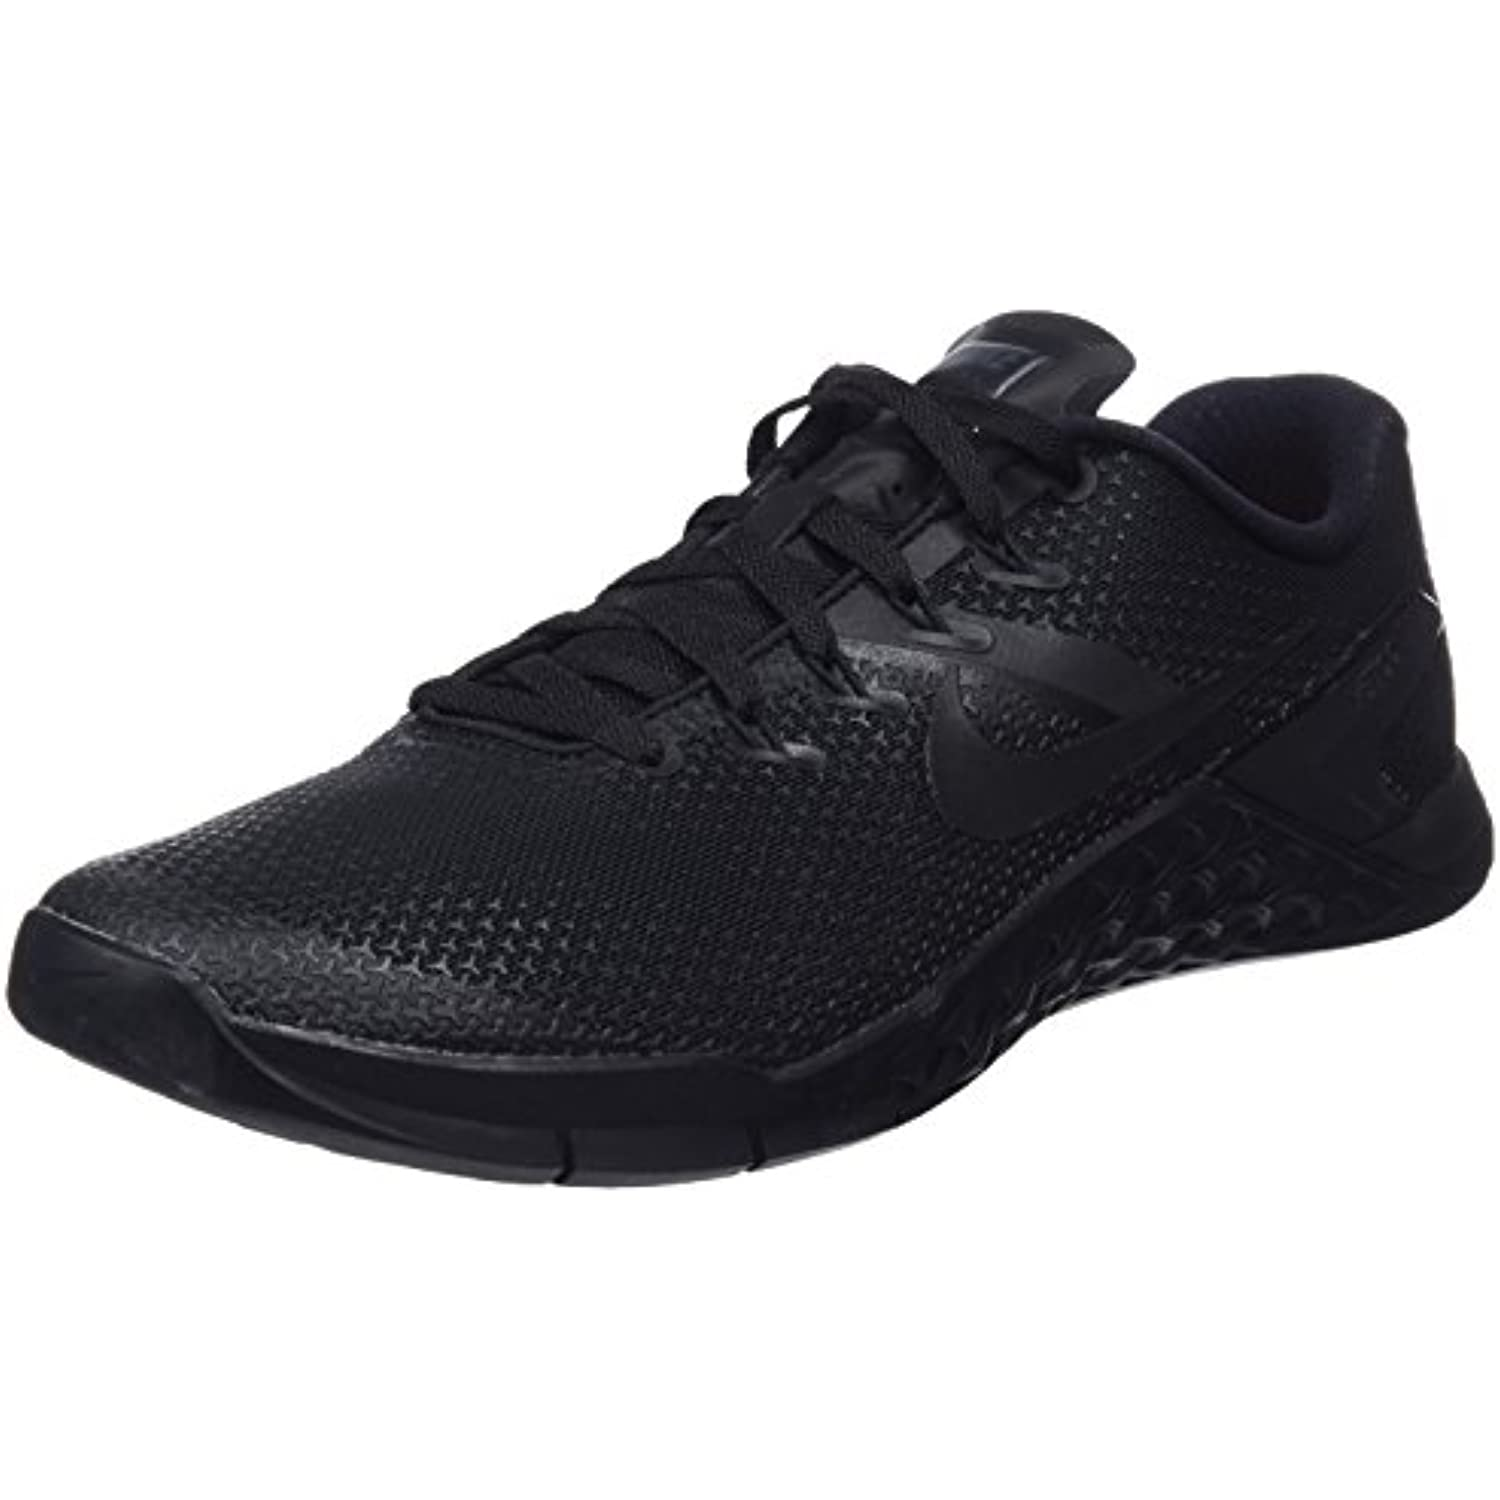 0a6006d70c49 NIKE Metcon 4, Chaussures de Fitness Homme - - - B071FFVMWR - 8ef43e ...